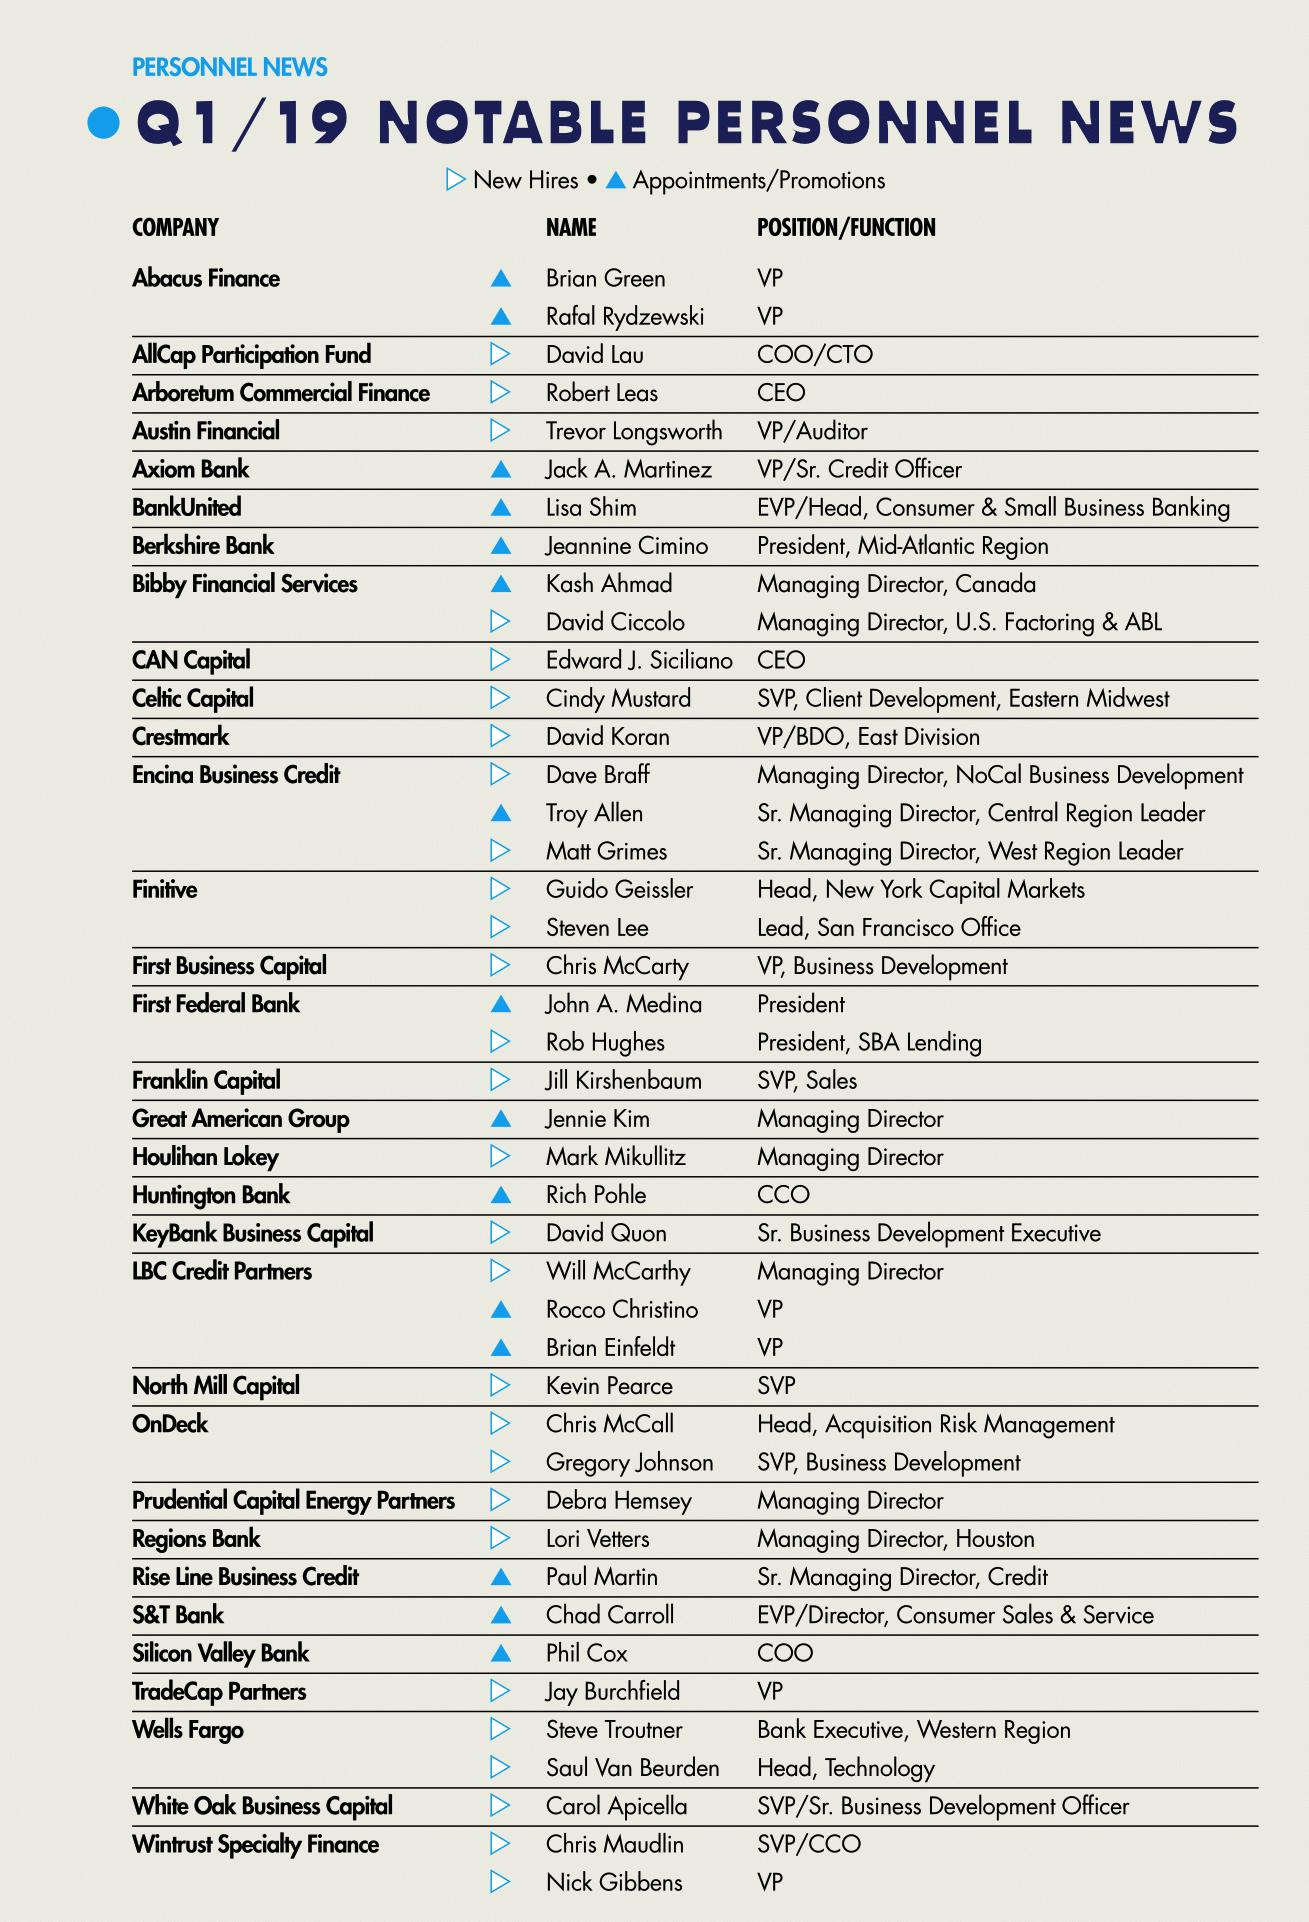 abfjournal notable personnel news - Q1/19